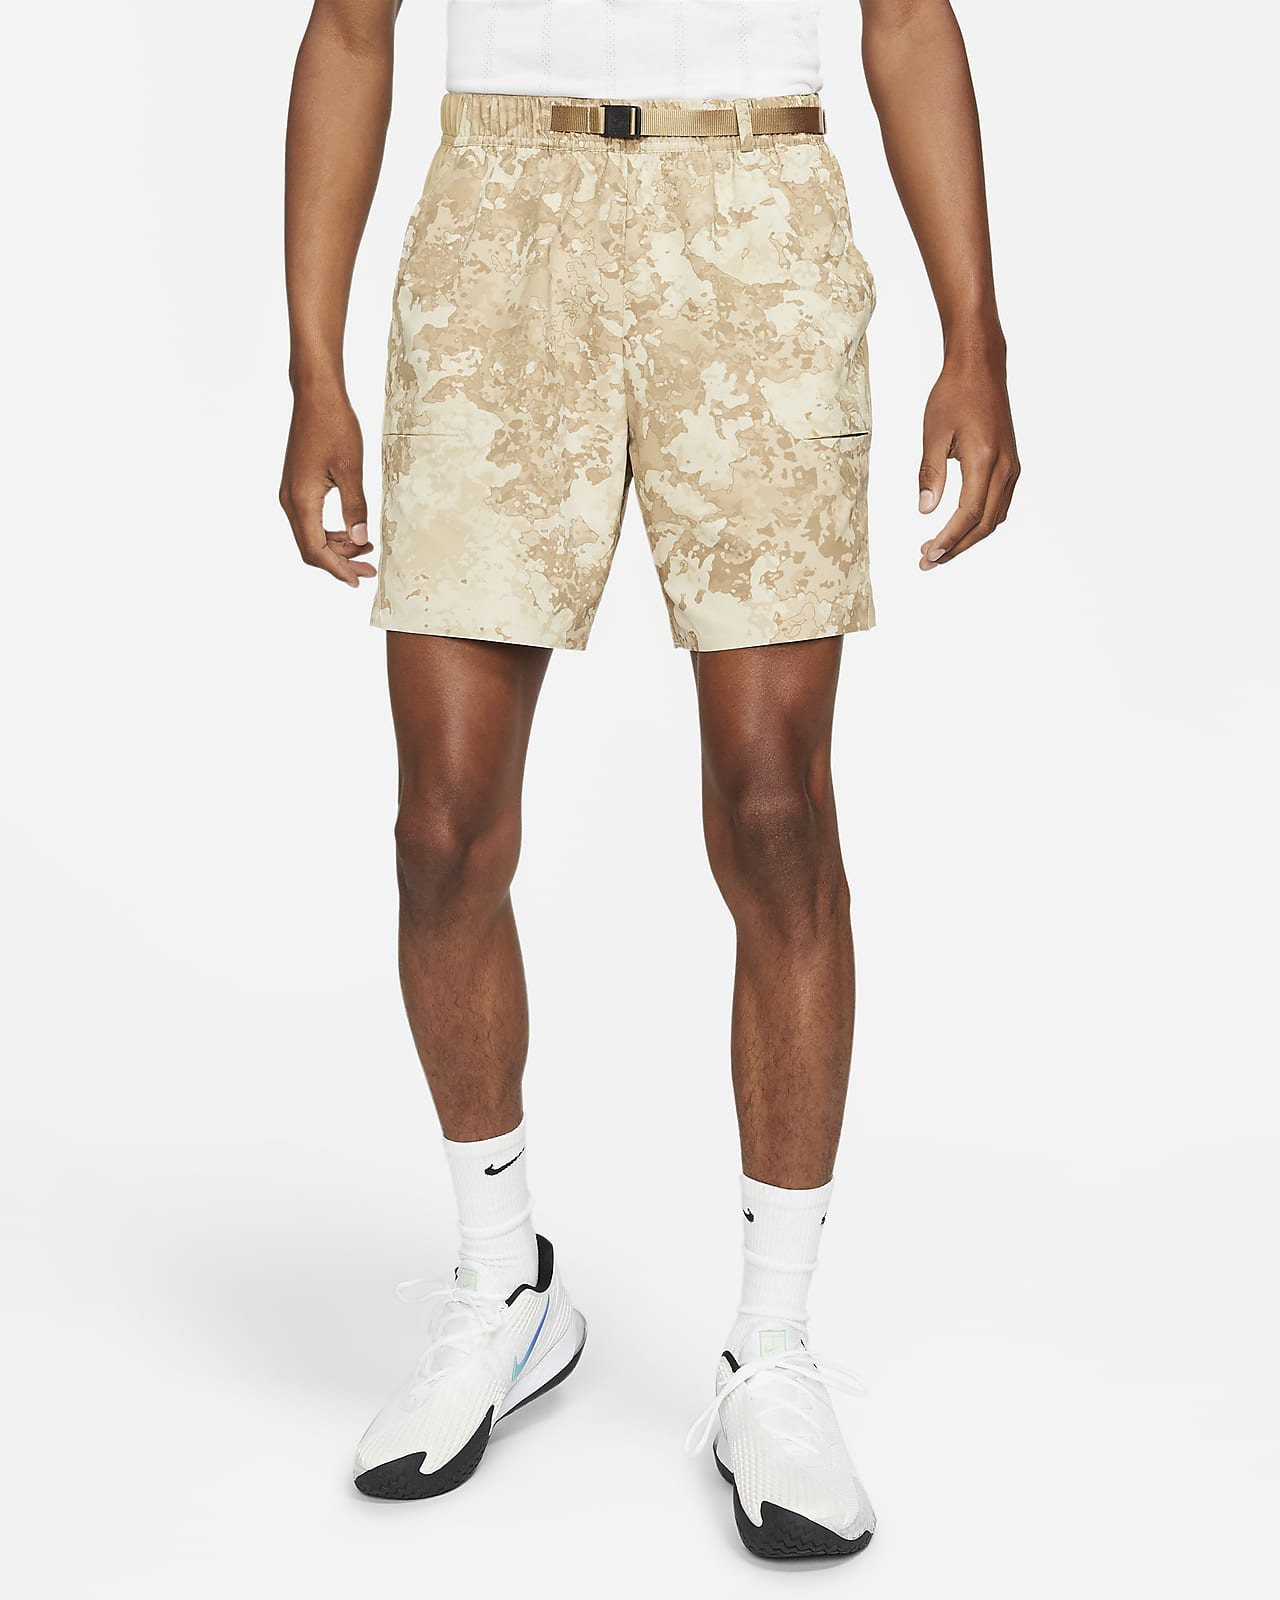 NikeCourt Flex Slam Men's Tennis Shorts